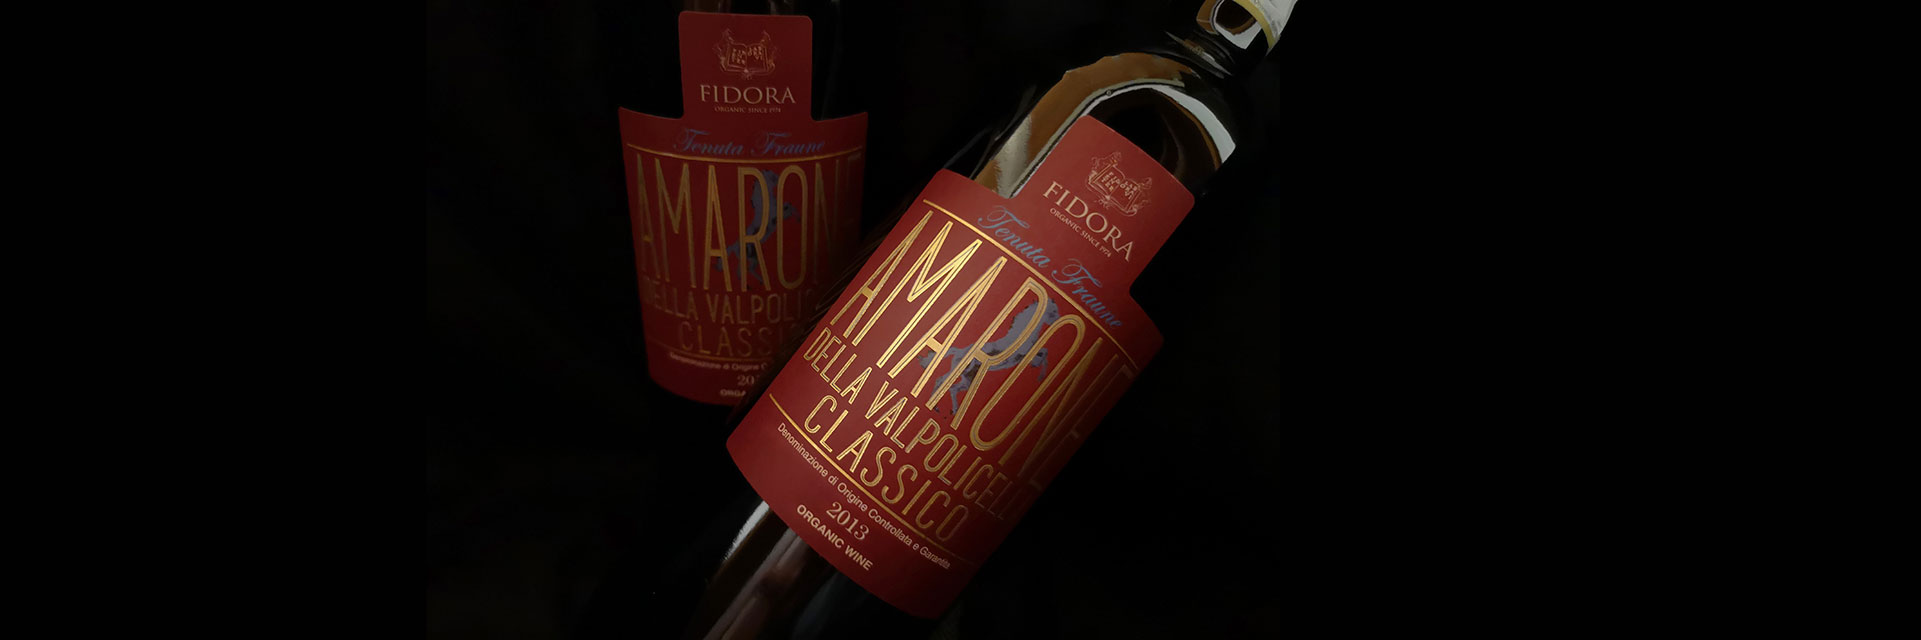 (English) Amarone classico EN